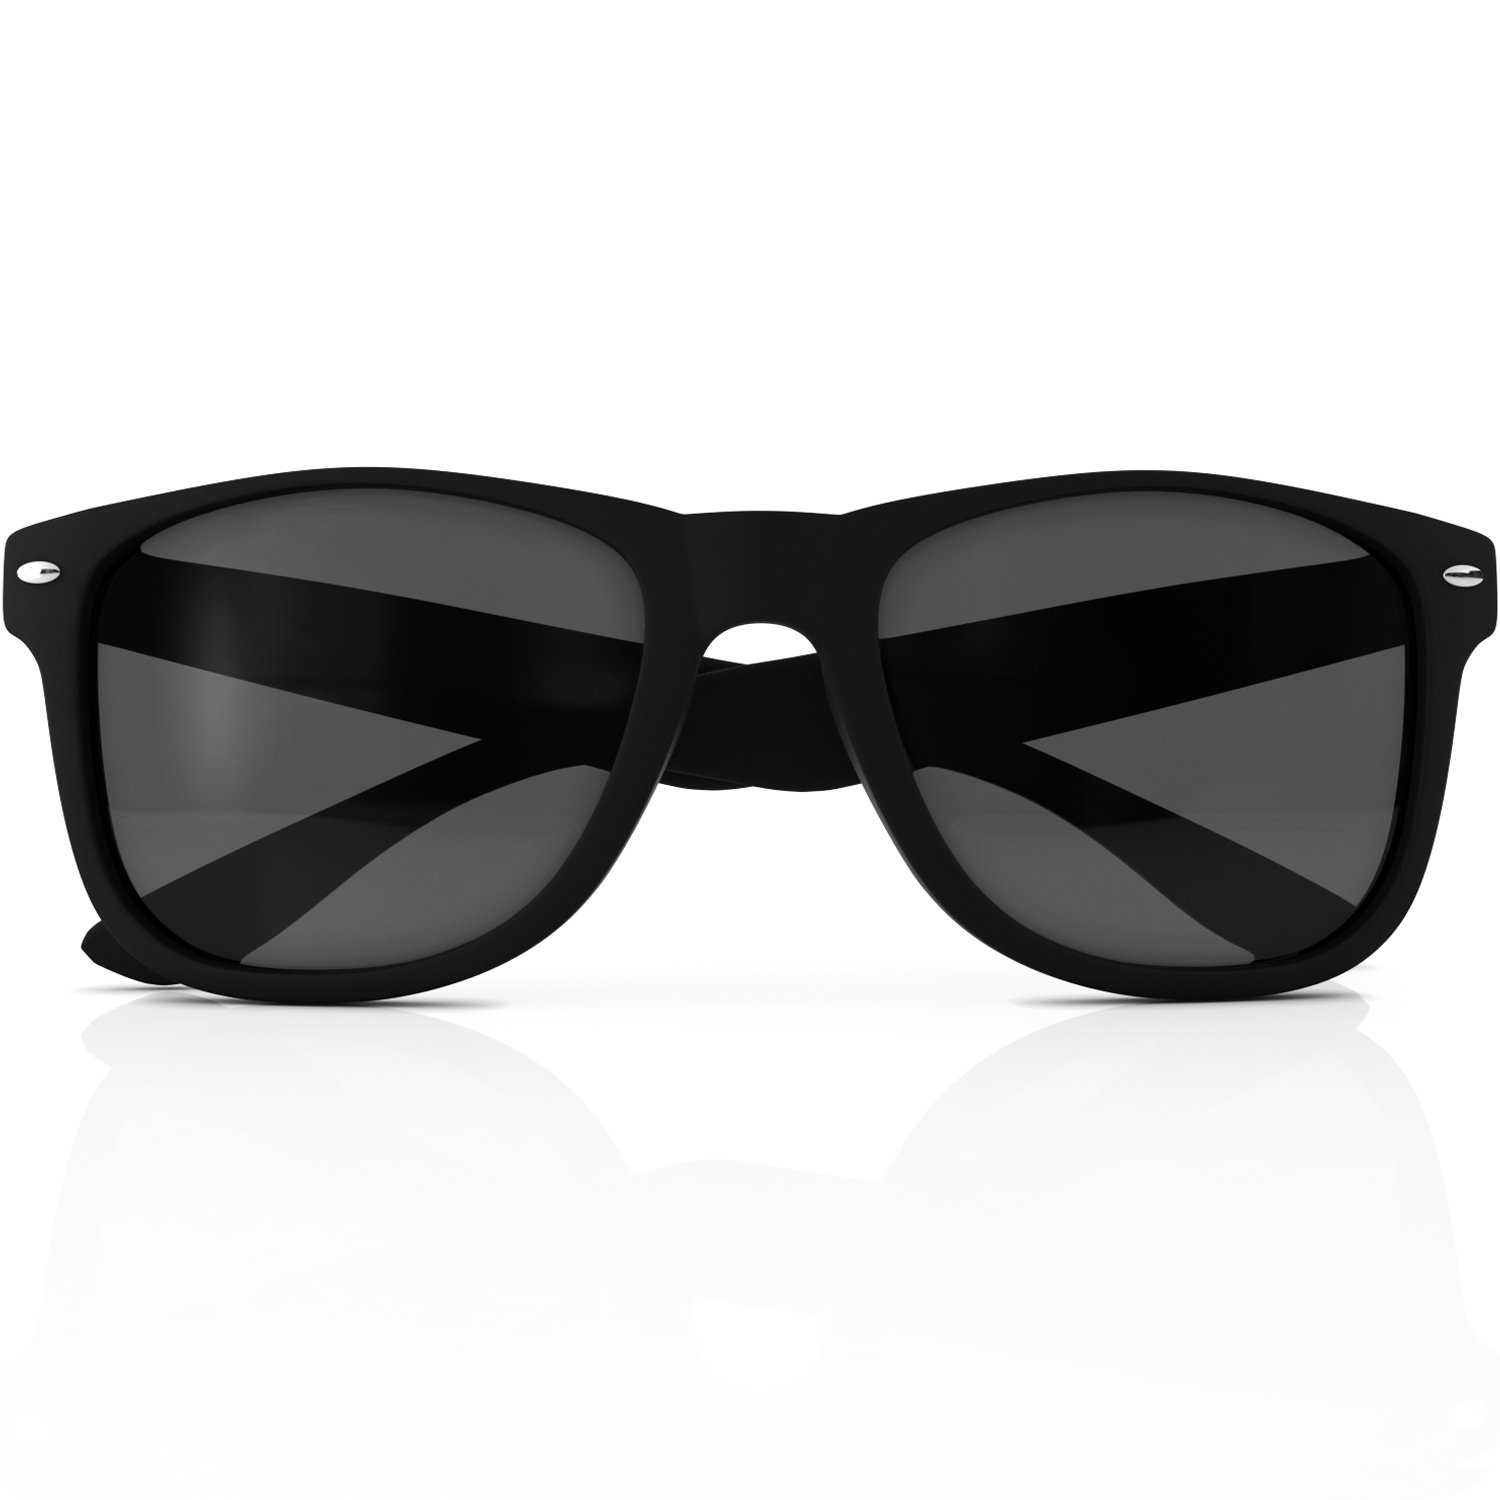 28267f2b5ce4 Amazon.com  Wayfarer Style Sunglasses Set Black Polarized Large Unisex  Outdoor Sports Glasses for Men Women Teens with UVA UVB Protection Retro  80s Vintage ...